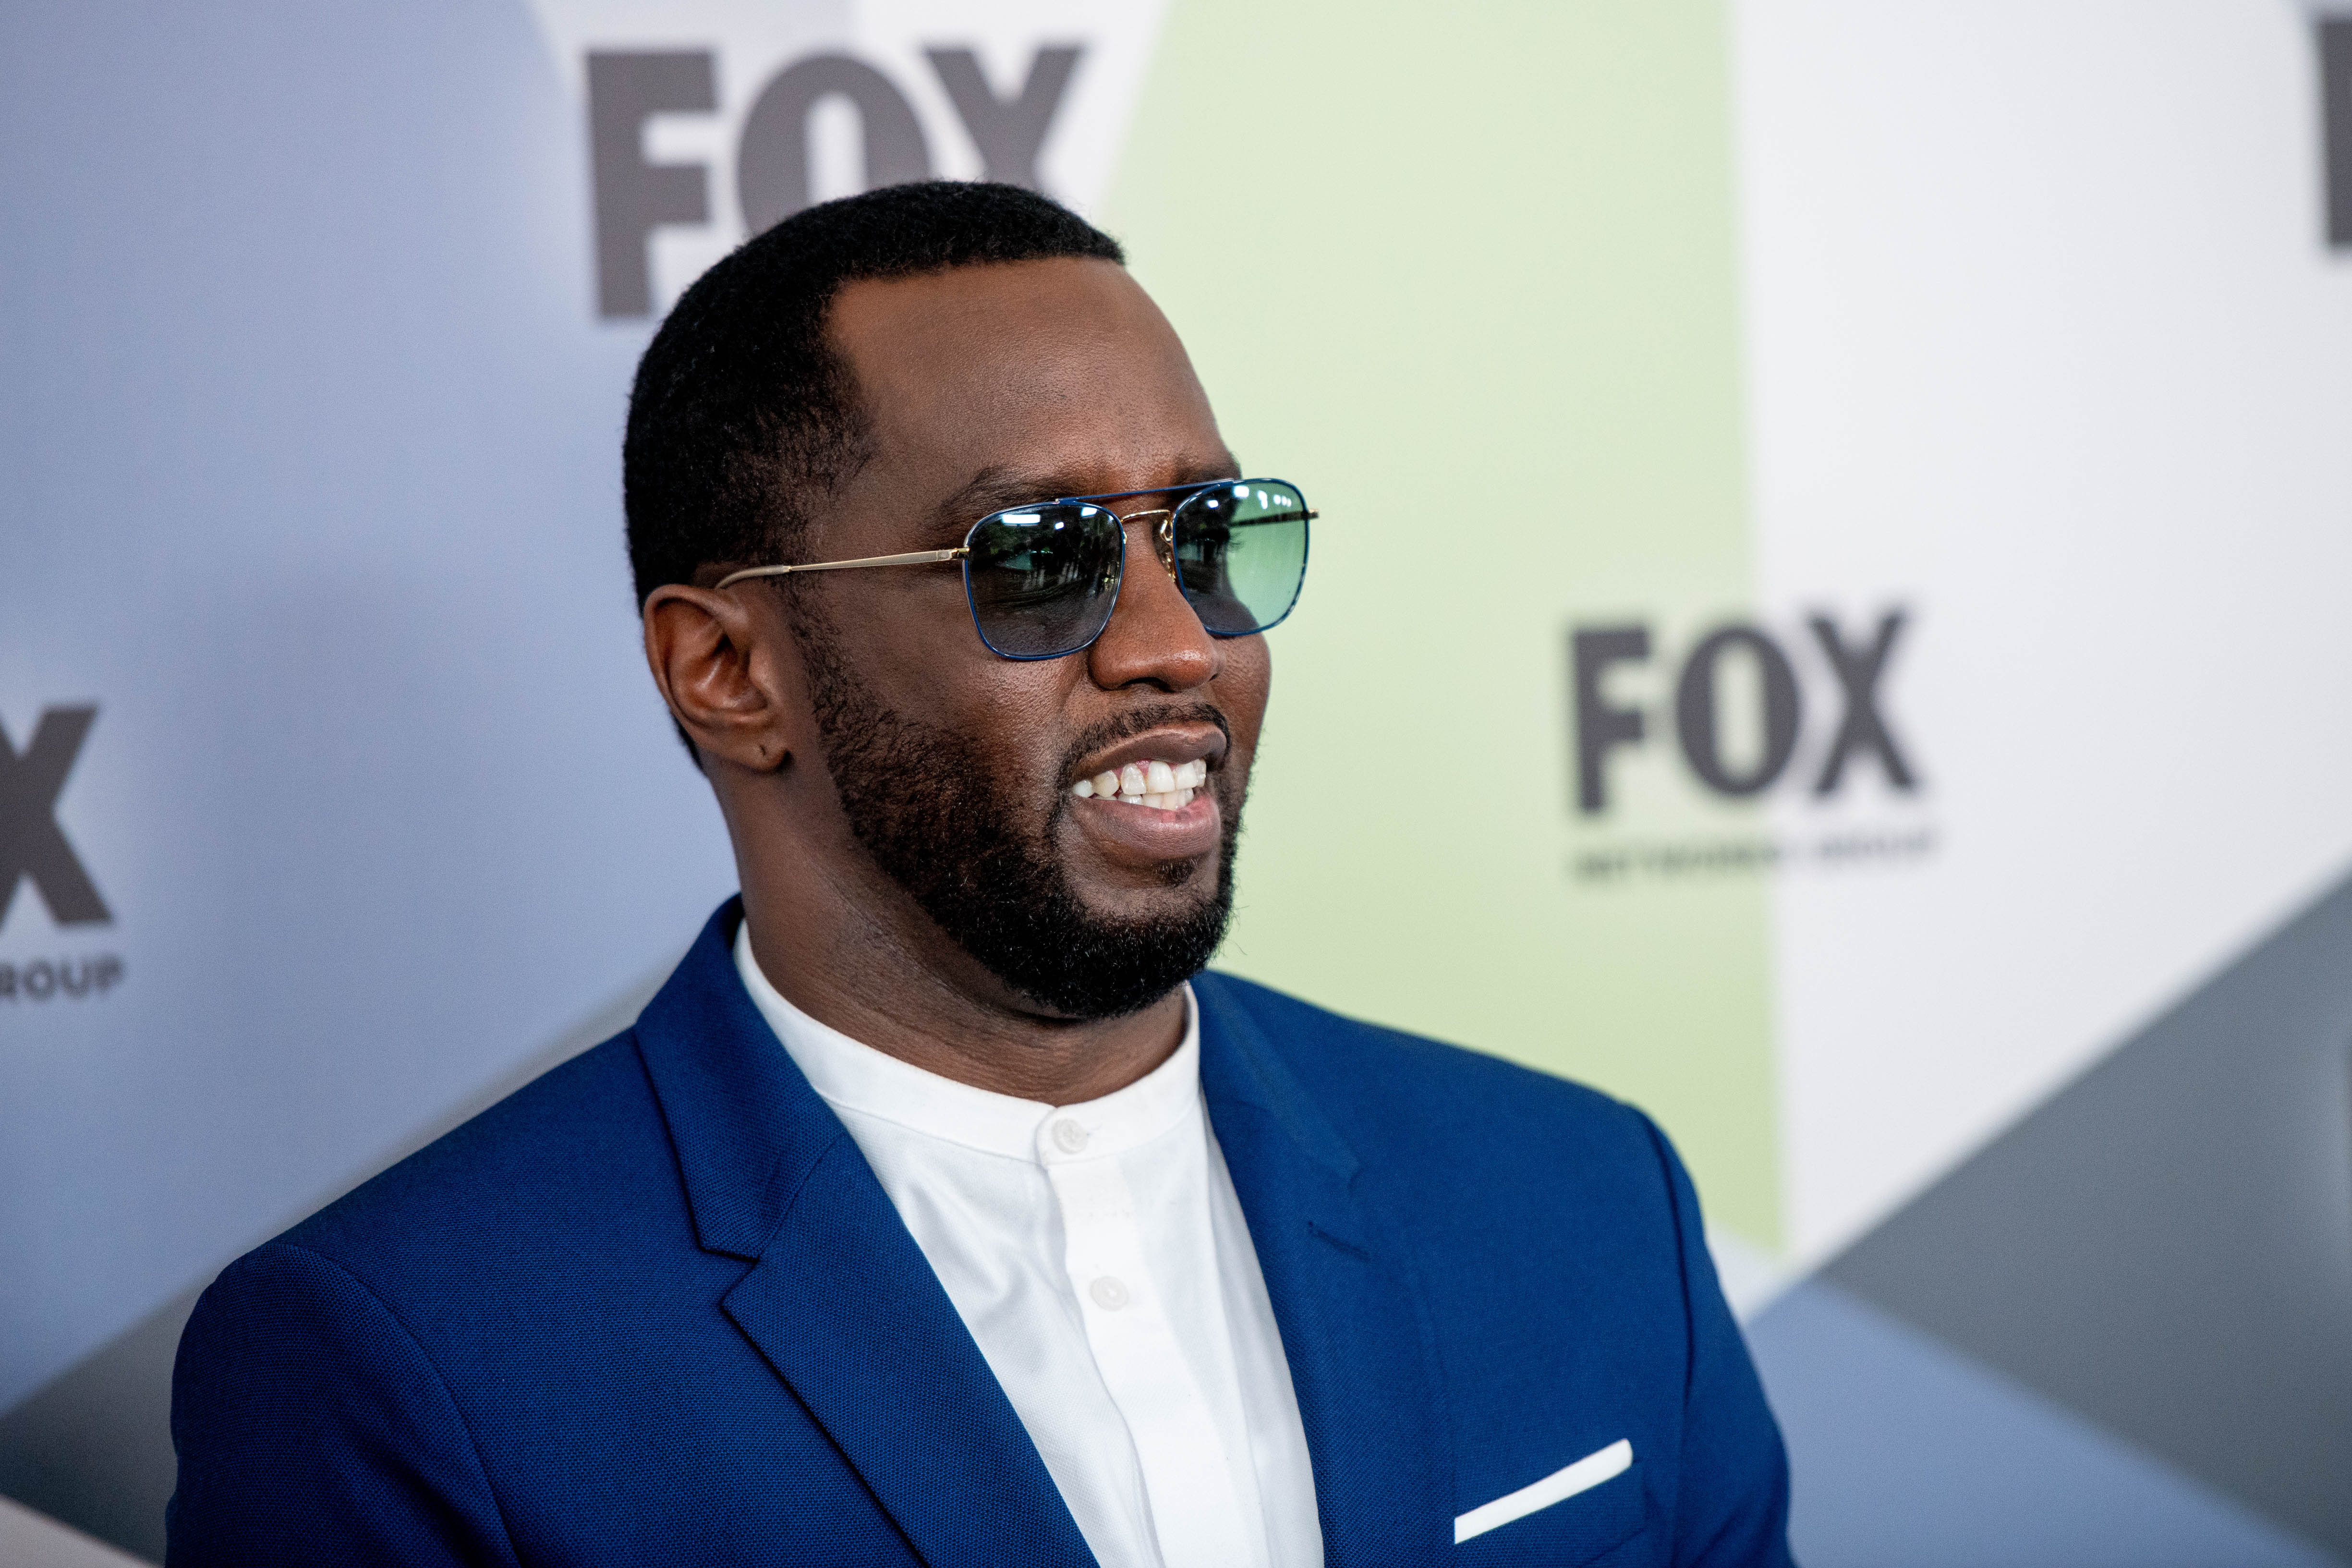 P. Diddy at the 2018 Fox Network Upfront in New York. | Photo: Getty Images